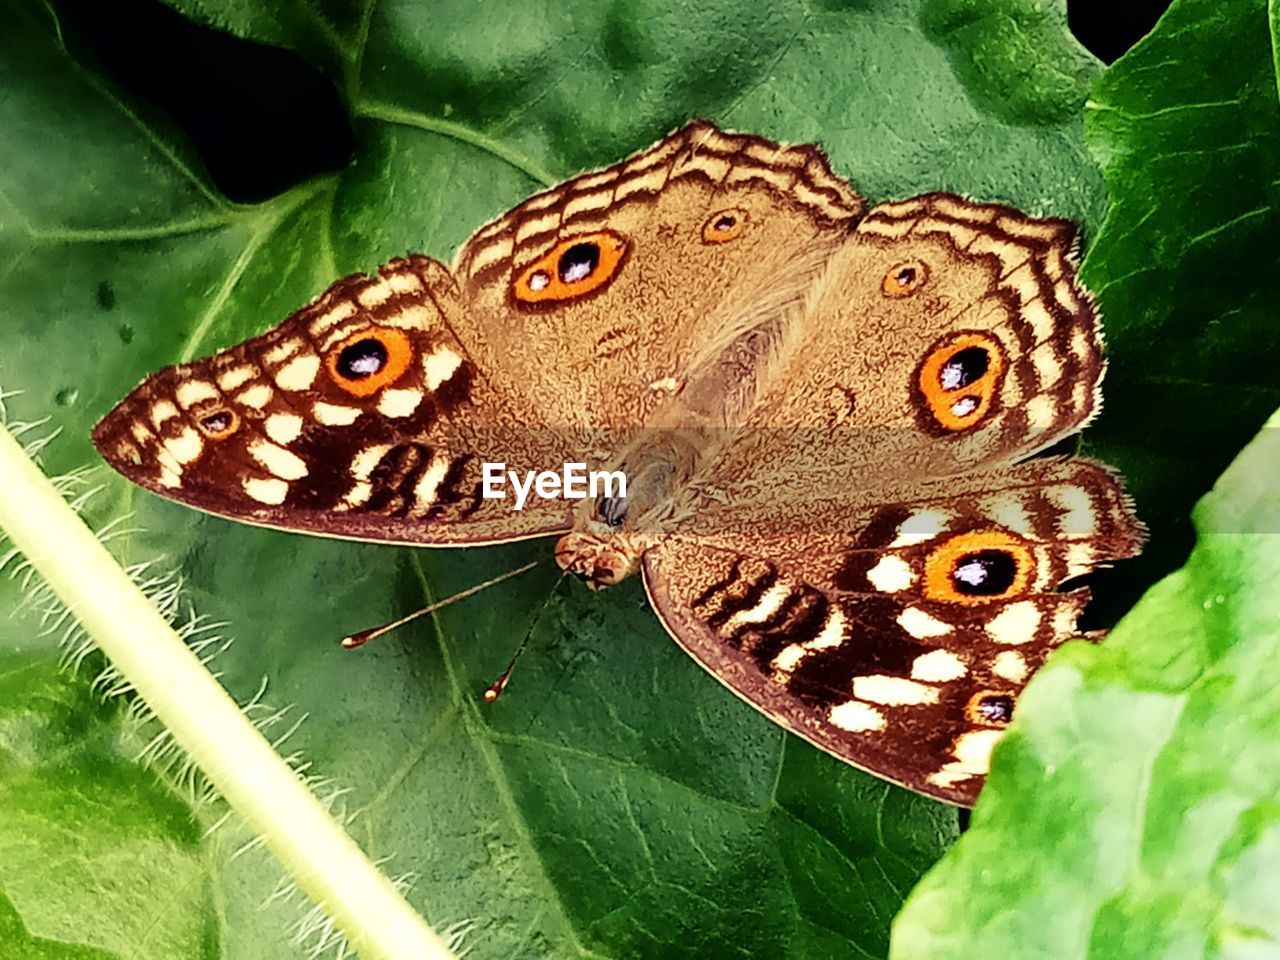 animal wildlife, animal themes, animal, plant part, animals in the wild, leaf, one animal, insect, butterfly - insect, close-up, invertebrate, green color, nature, animal wing, animal markings, beauty in nature, day, no people, plant, natural pattern, butterfly, outdoors, leaves